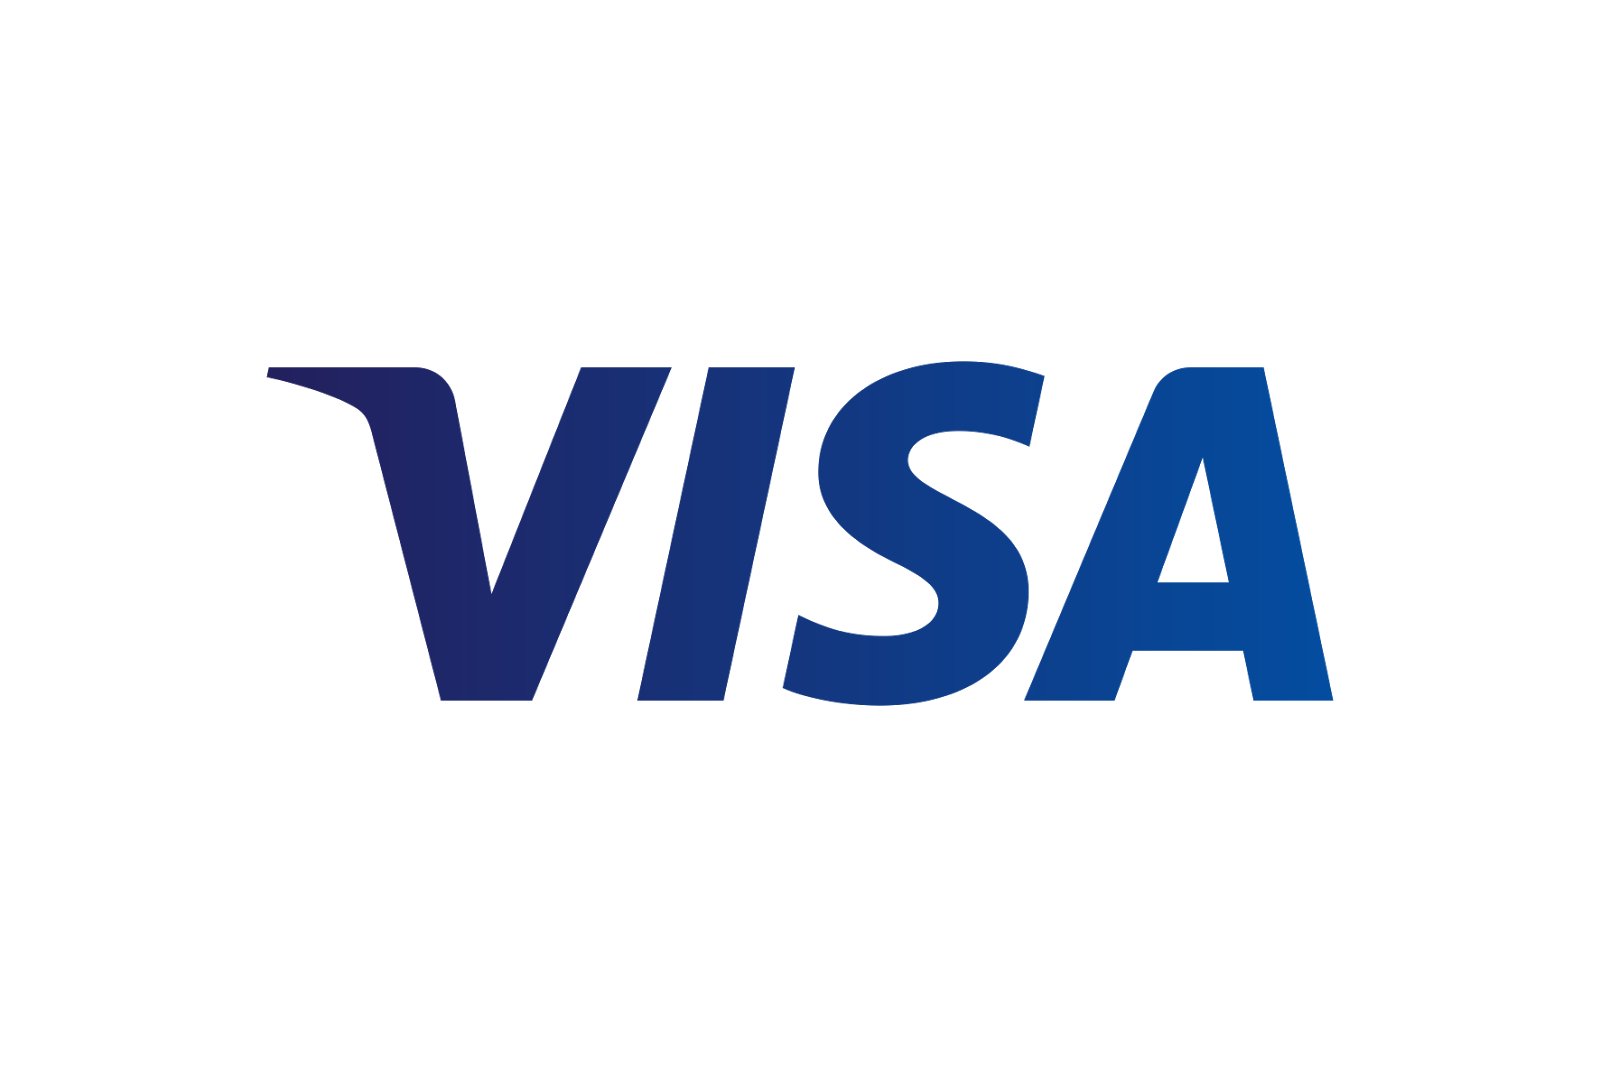 visa logo rh logo share blogspot com visa mastercard logo download visa card logo download